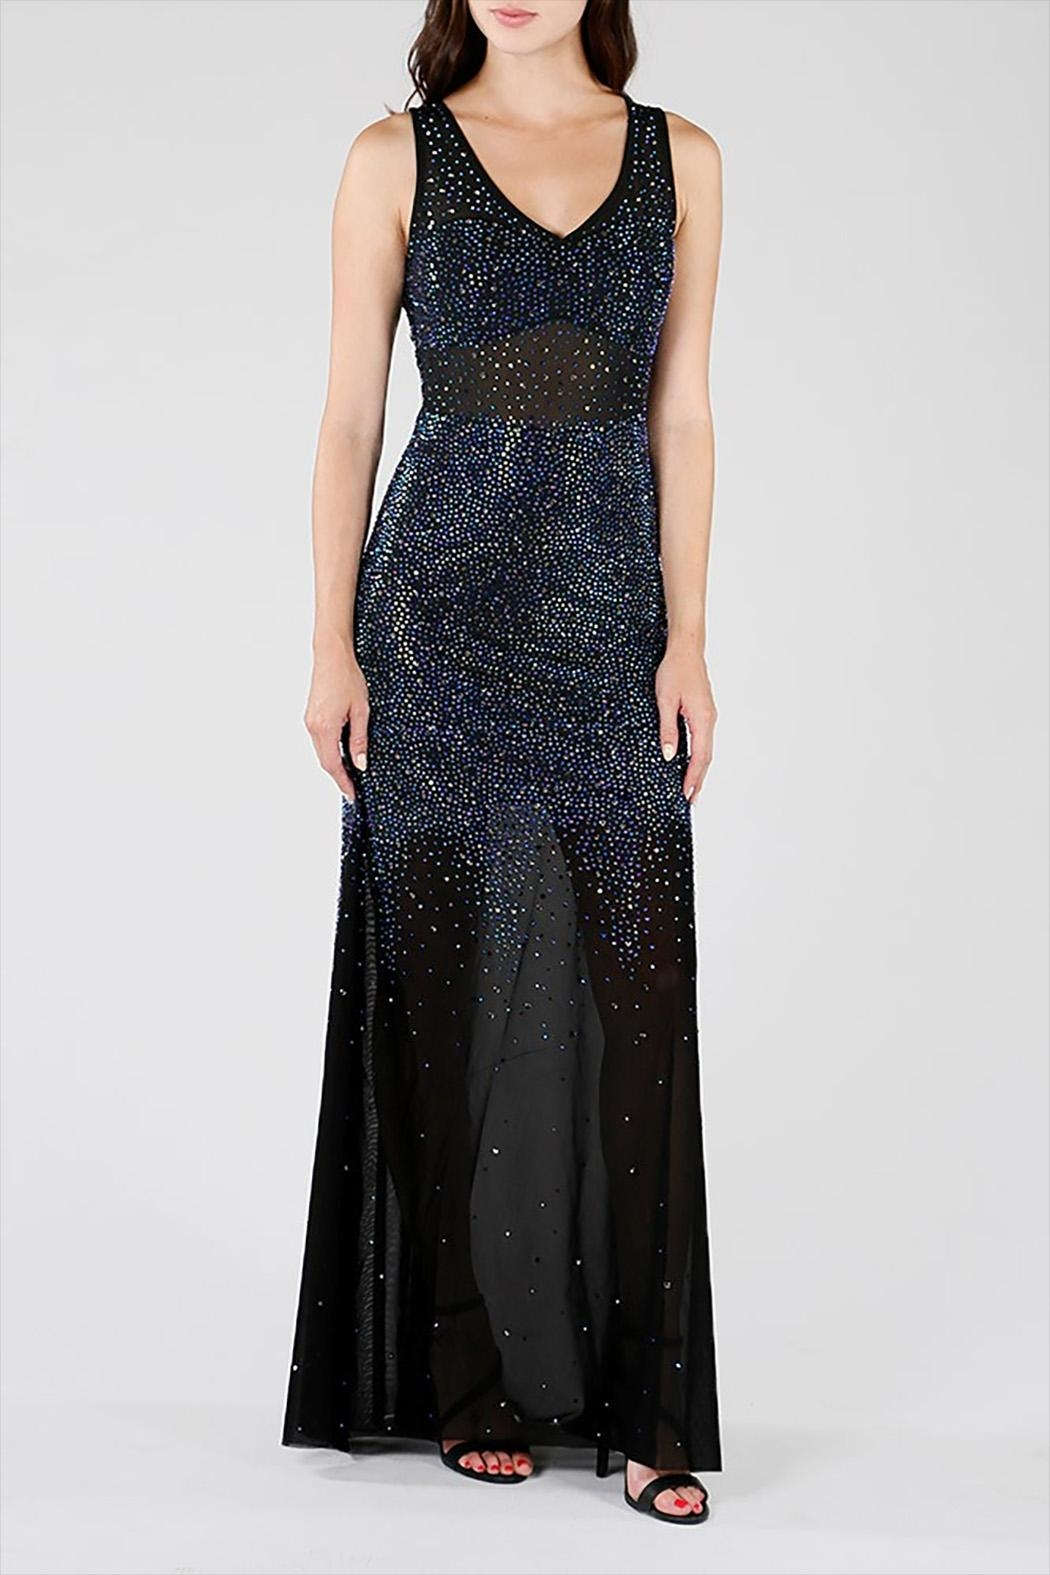 Wow Couture Rhinestones Maxi Dress - Main Image